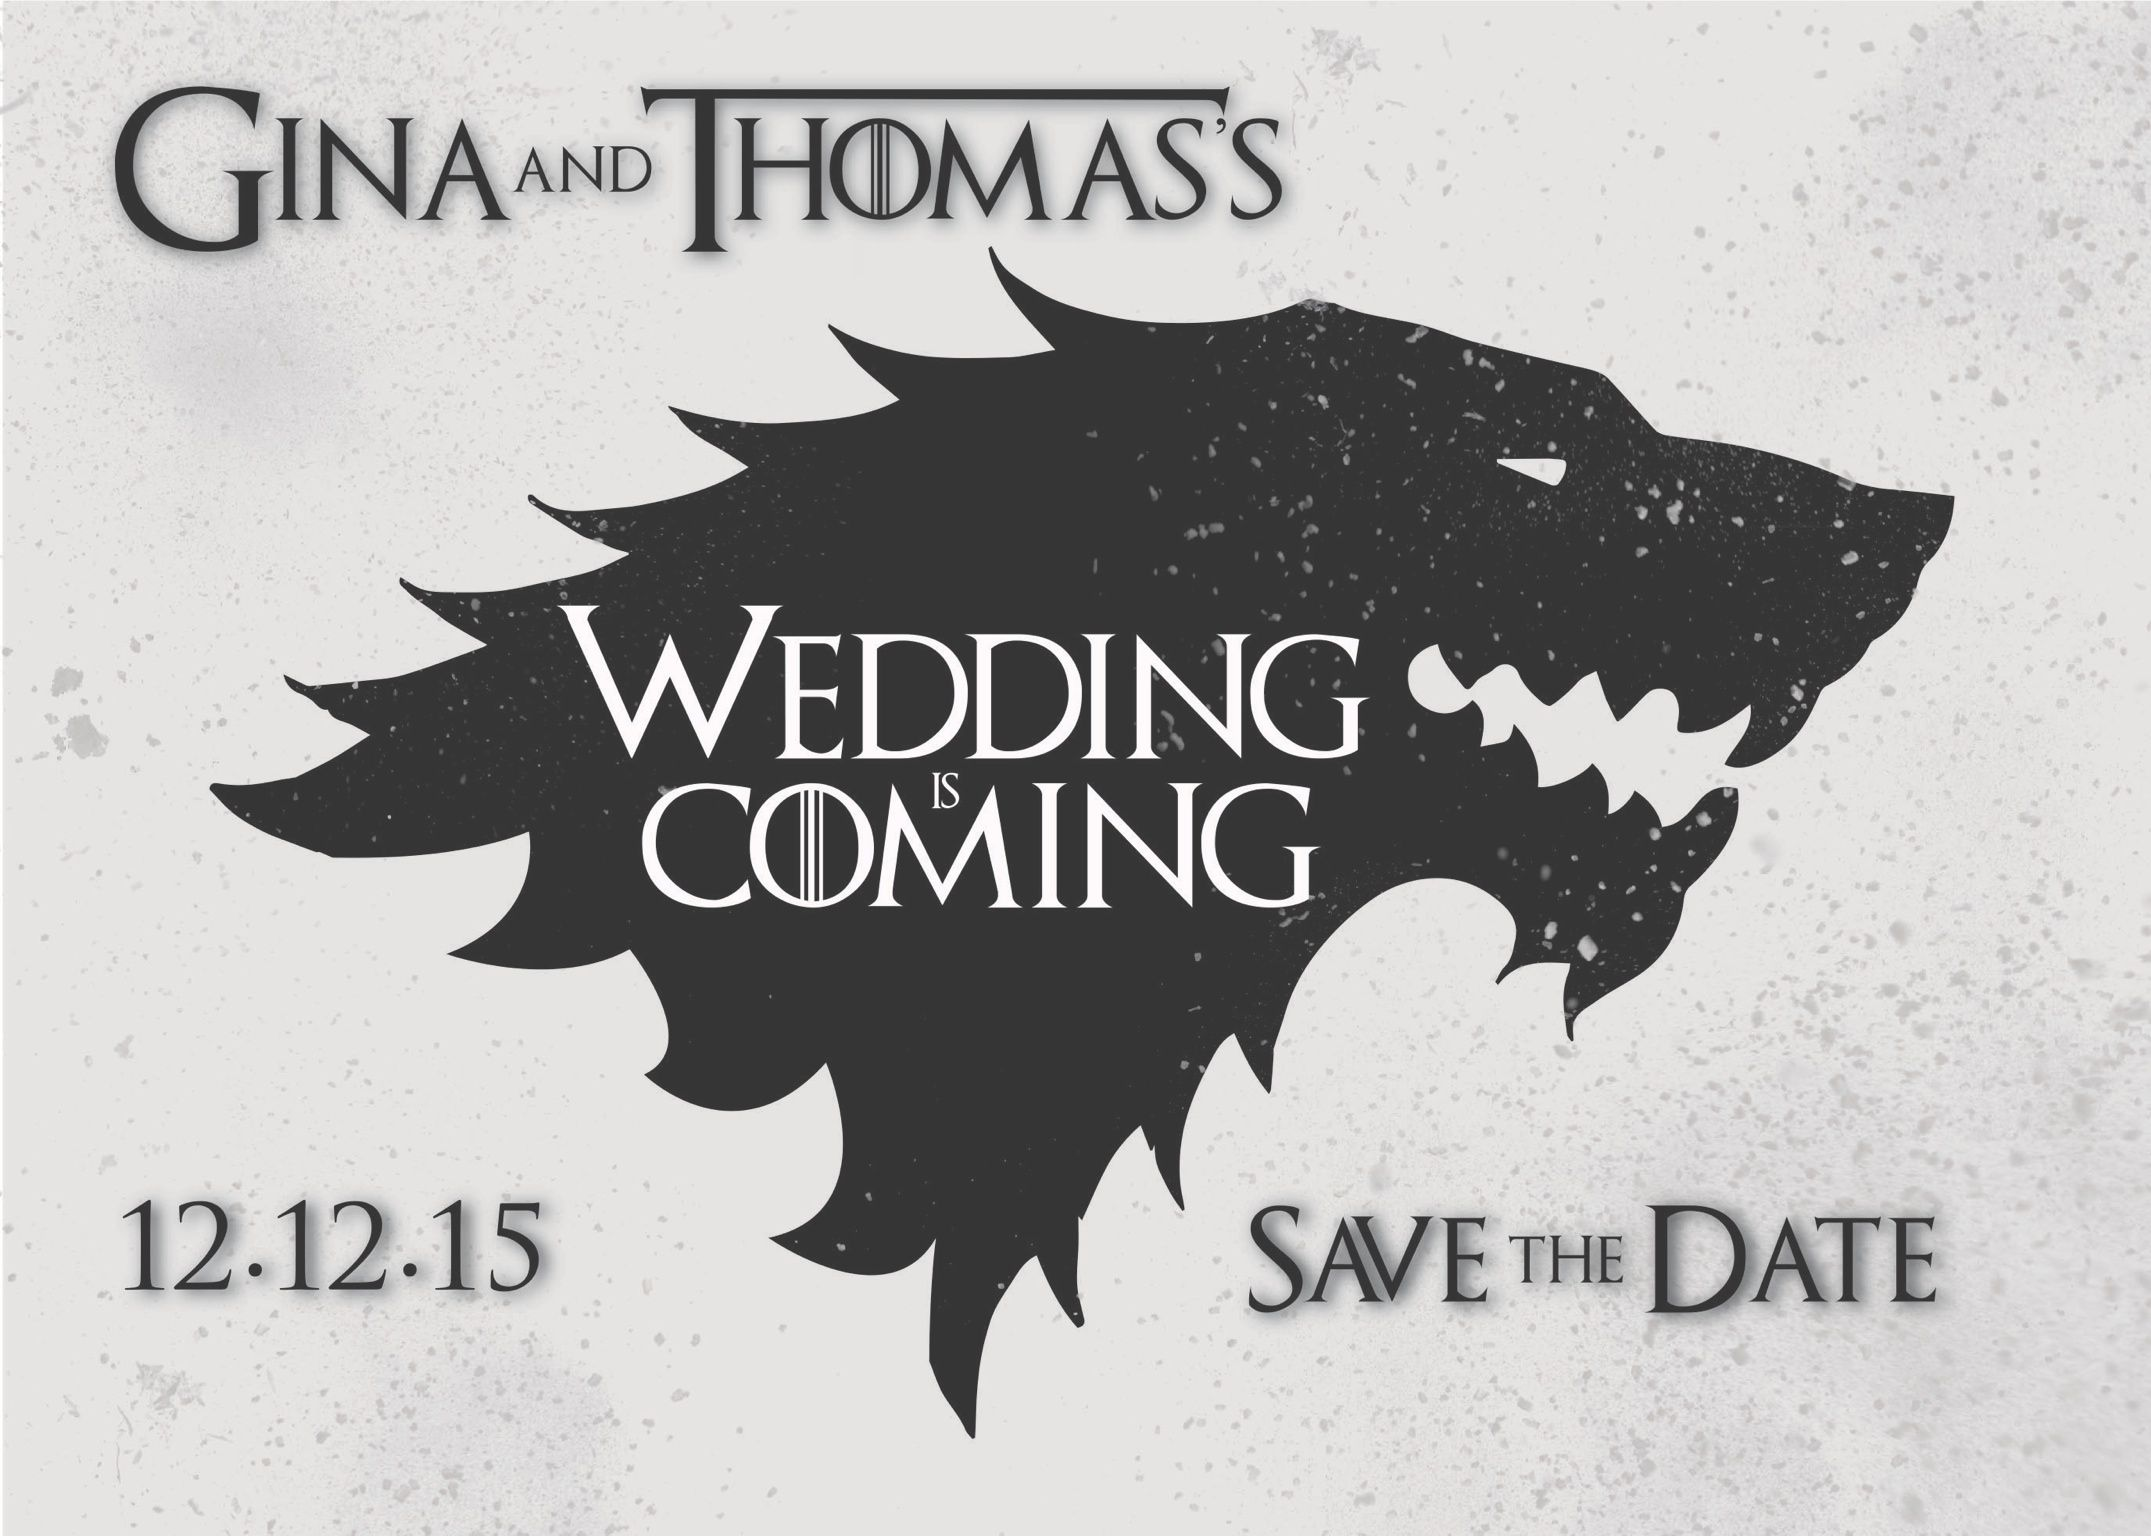 winter is coming game of thrones wedding themed save the date